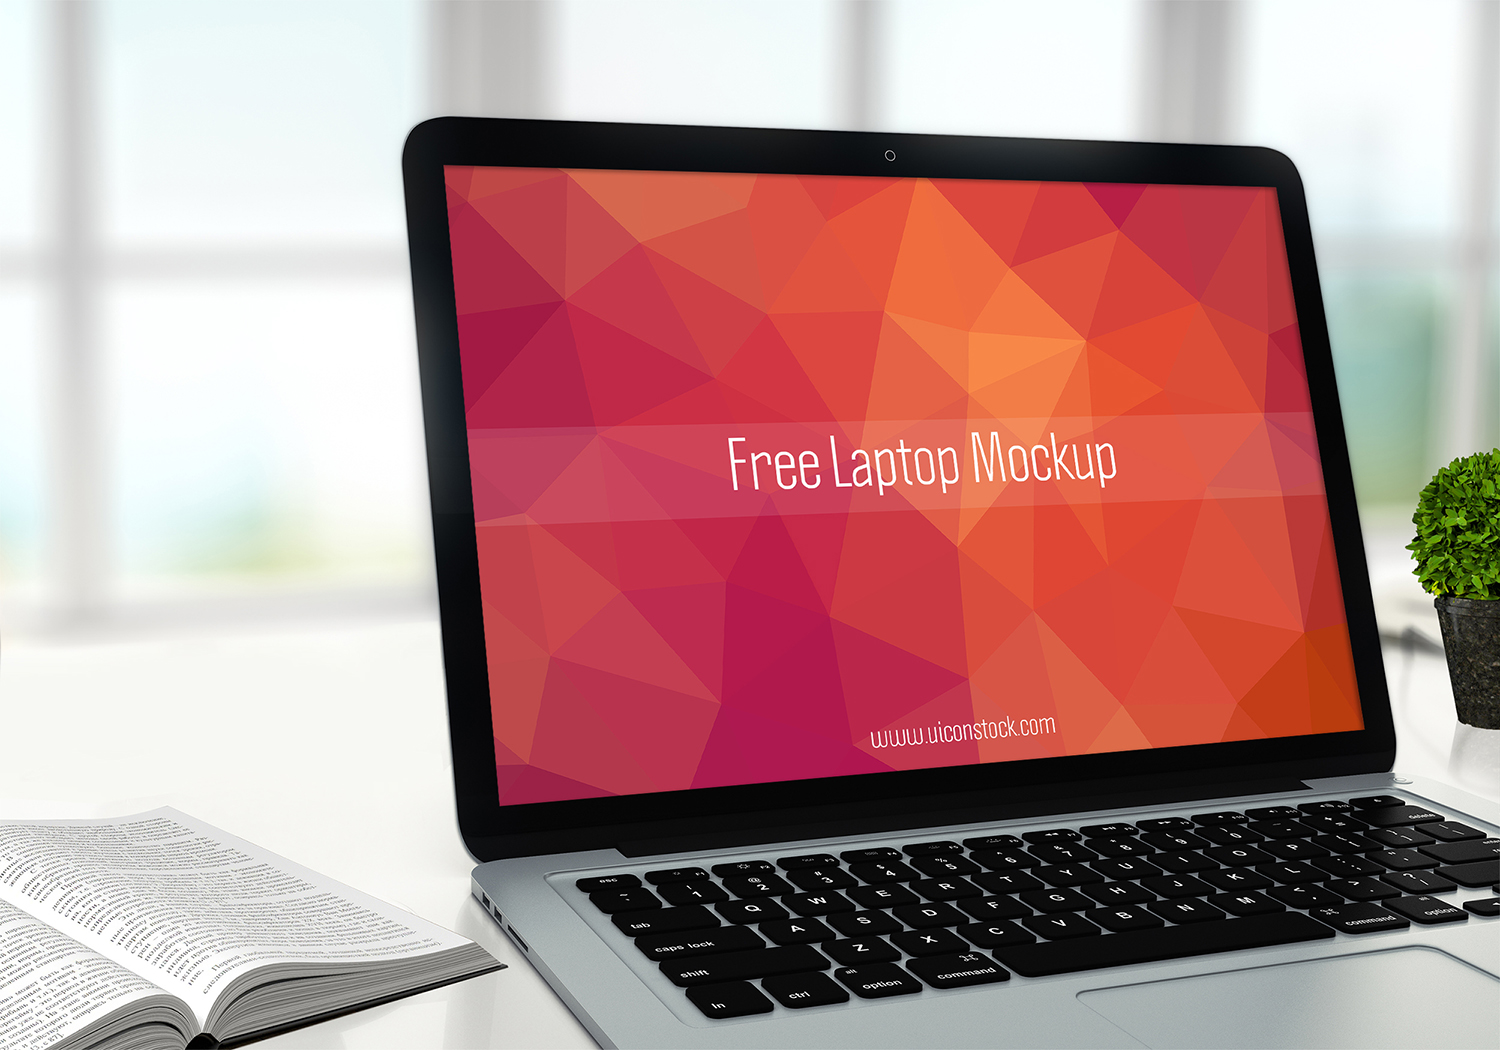 Free Laptop Mockup in Office